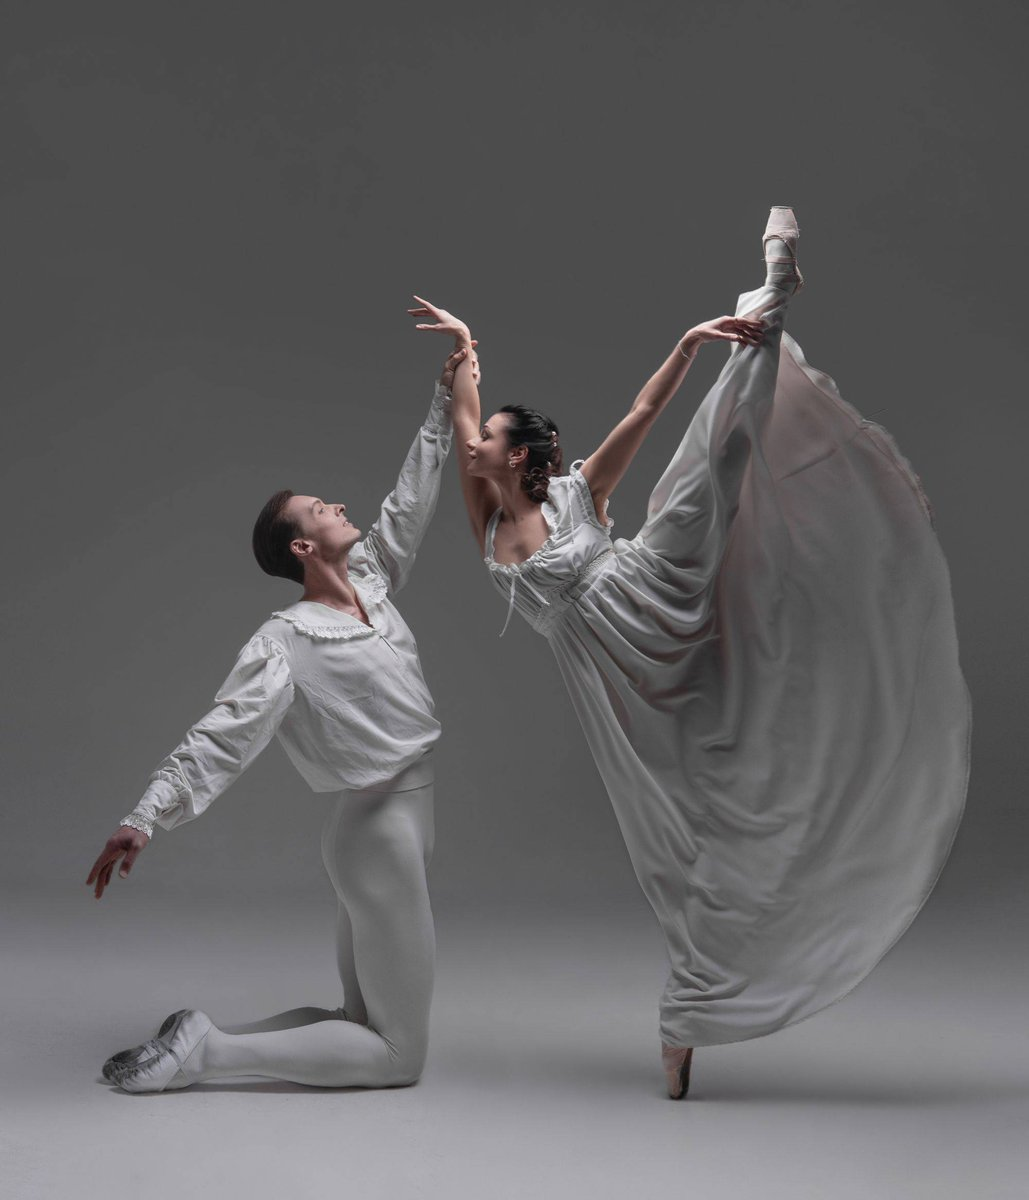 Today is the Day! The National Ballet Theatre of Odessa, Ukraine presents Romeo and Juliet on our big, beautiful stage! #RomeoAndJuliet #ParamountAurorapic.twitter.com/ru9YrhbLvf